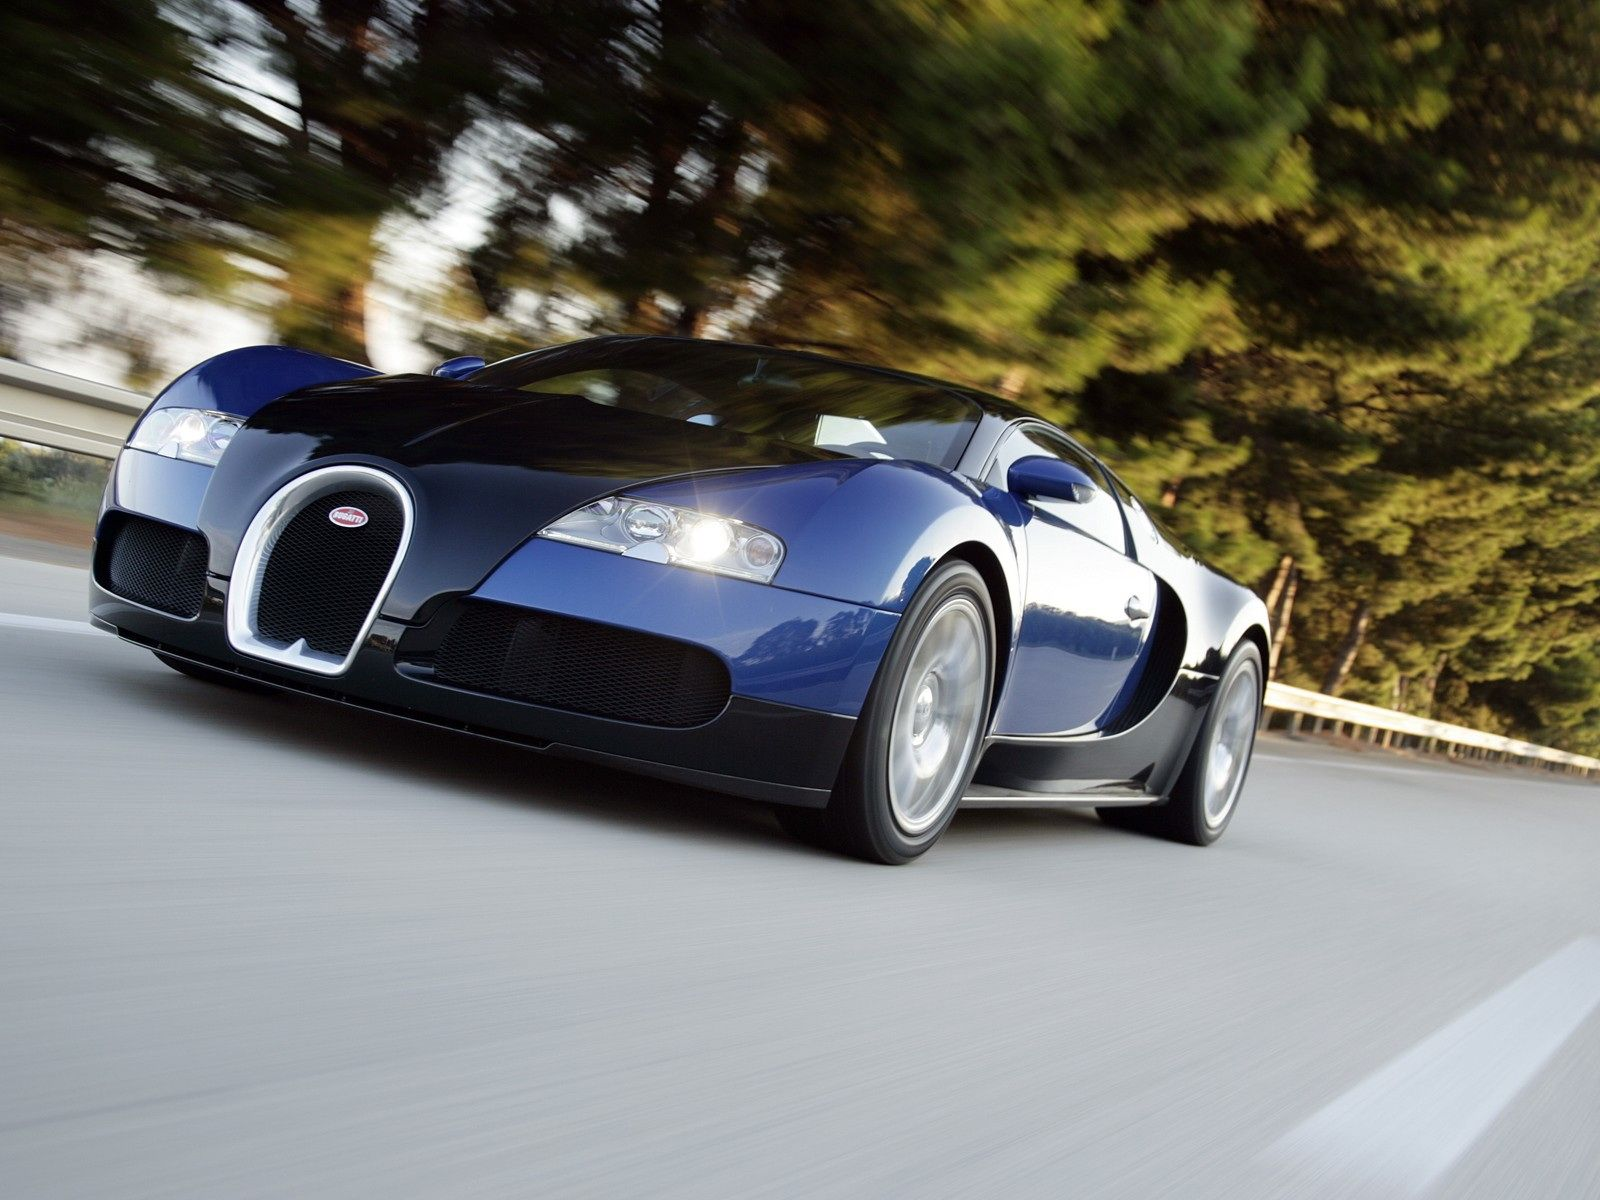 Is Wallpaper Expensive bugatti veyron hd wallpaper desktop and specs | quote | pinterest